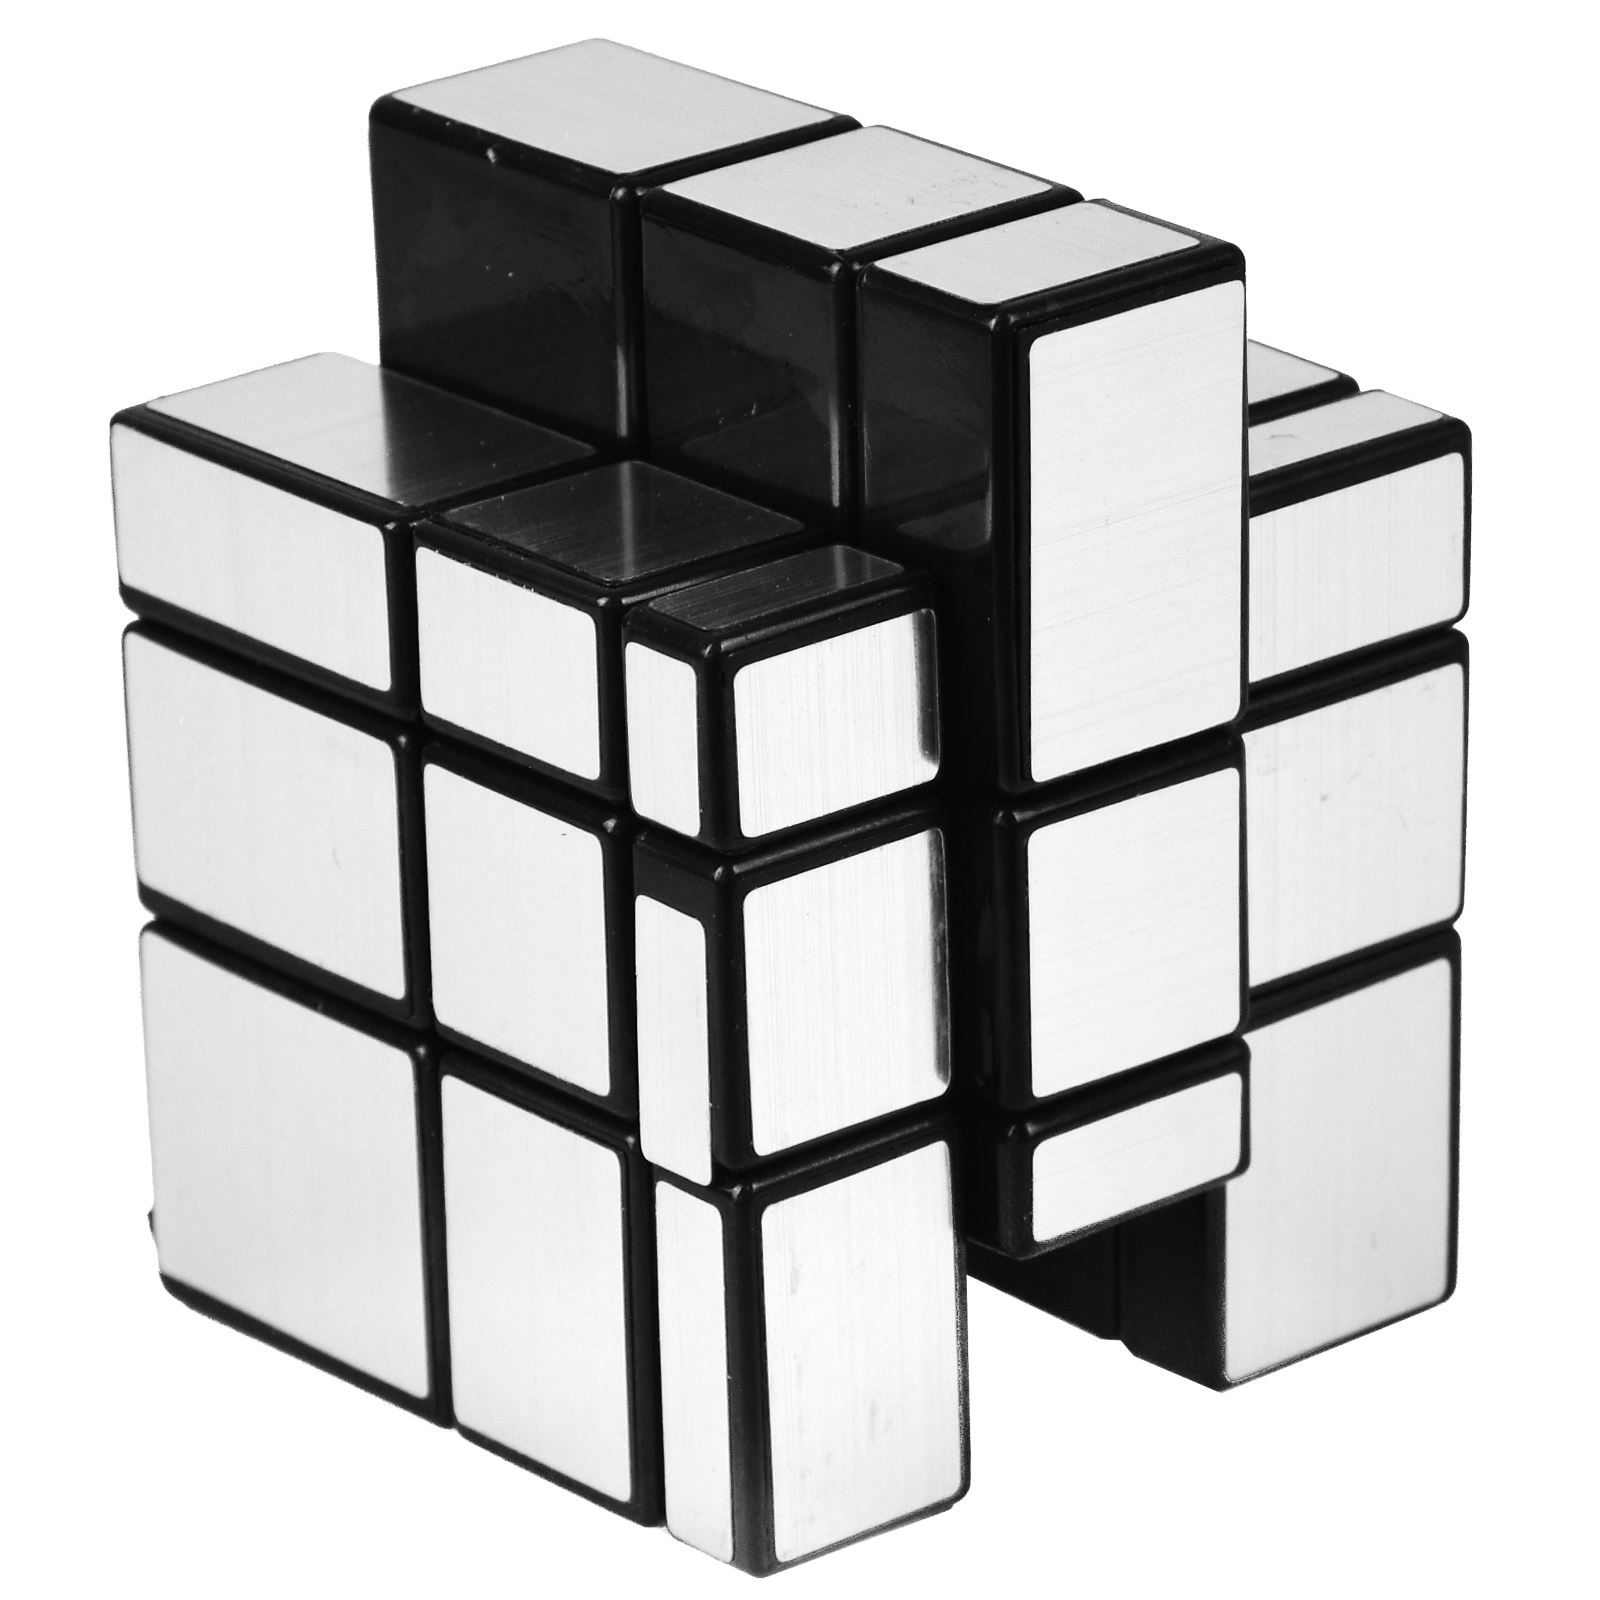 3x3-Miroir-Cube-Puzzle-Mind-Game-Brain-Teasers-Magic-scies-sauteuses-enfants-jouet-adulte-cadeau miniature 9